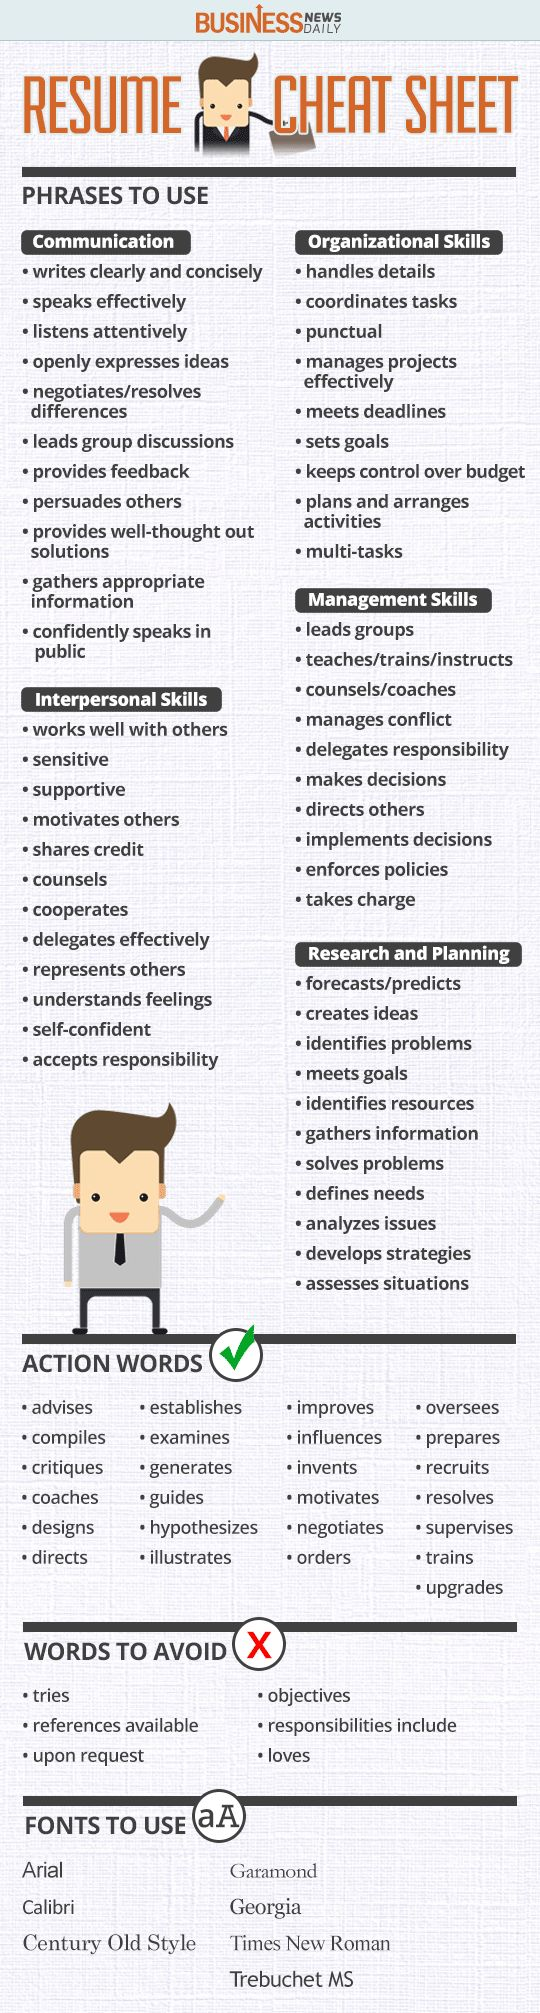 Opposenewapstandardsus  Sweet  Ideas About Resume On Pinterest  Cv Format Resume Cv And  With Extraordinary Resume Cheat Sheet Infographic Andrews Almost Done With A Complete Unit On Employment Which With Nice Buzzwords For Resumes Also Management Consulting Resume In Addition Waitress Job Description Resume And Doctor Resume As Well As College Student Resume Sample Additionally Cook Resume Sample From Pinterestcom With Opposenewapstandardsus  Extraordinary  Ideas About Resume On Pinterest  Cv Format Resume Cv And  With Nice Resume Cheat Sheet Infographic Andrews Almost Done With A Complete Unit On Employment Which And Sweet Buzzwords For Resumes Also Management Consulting Resume In Addition Waitress Job Description Resume From Pinterestcom